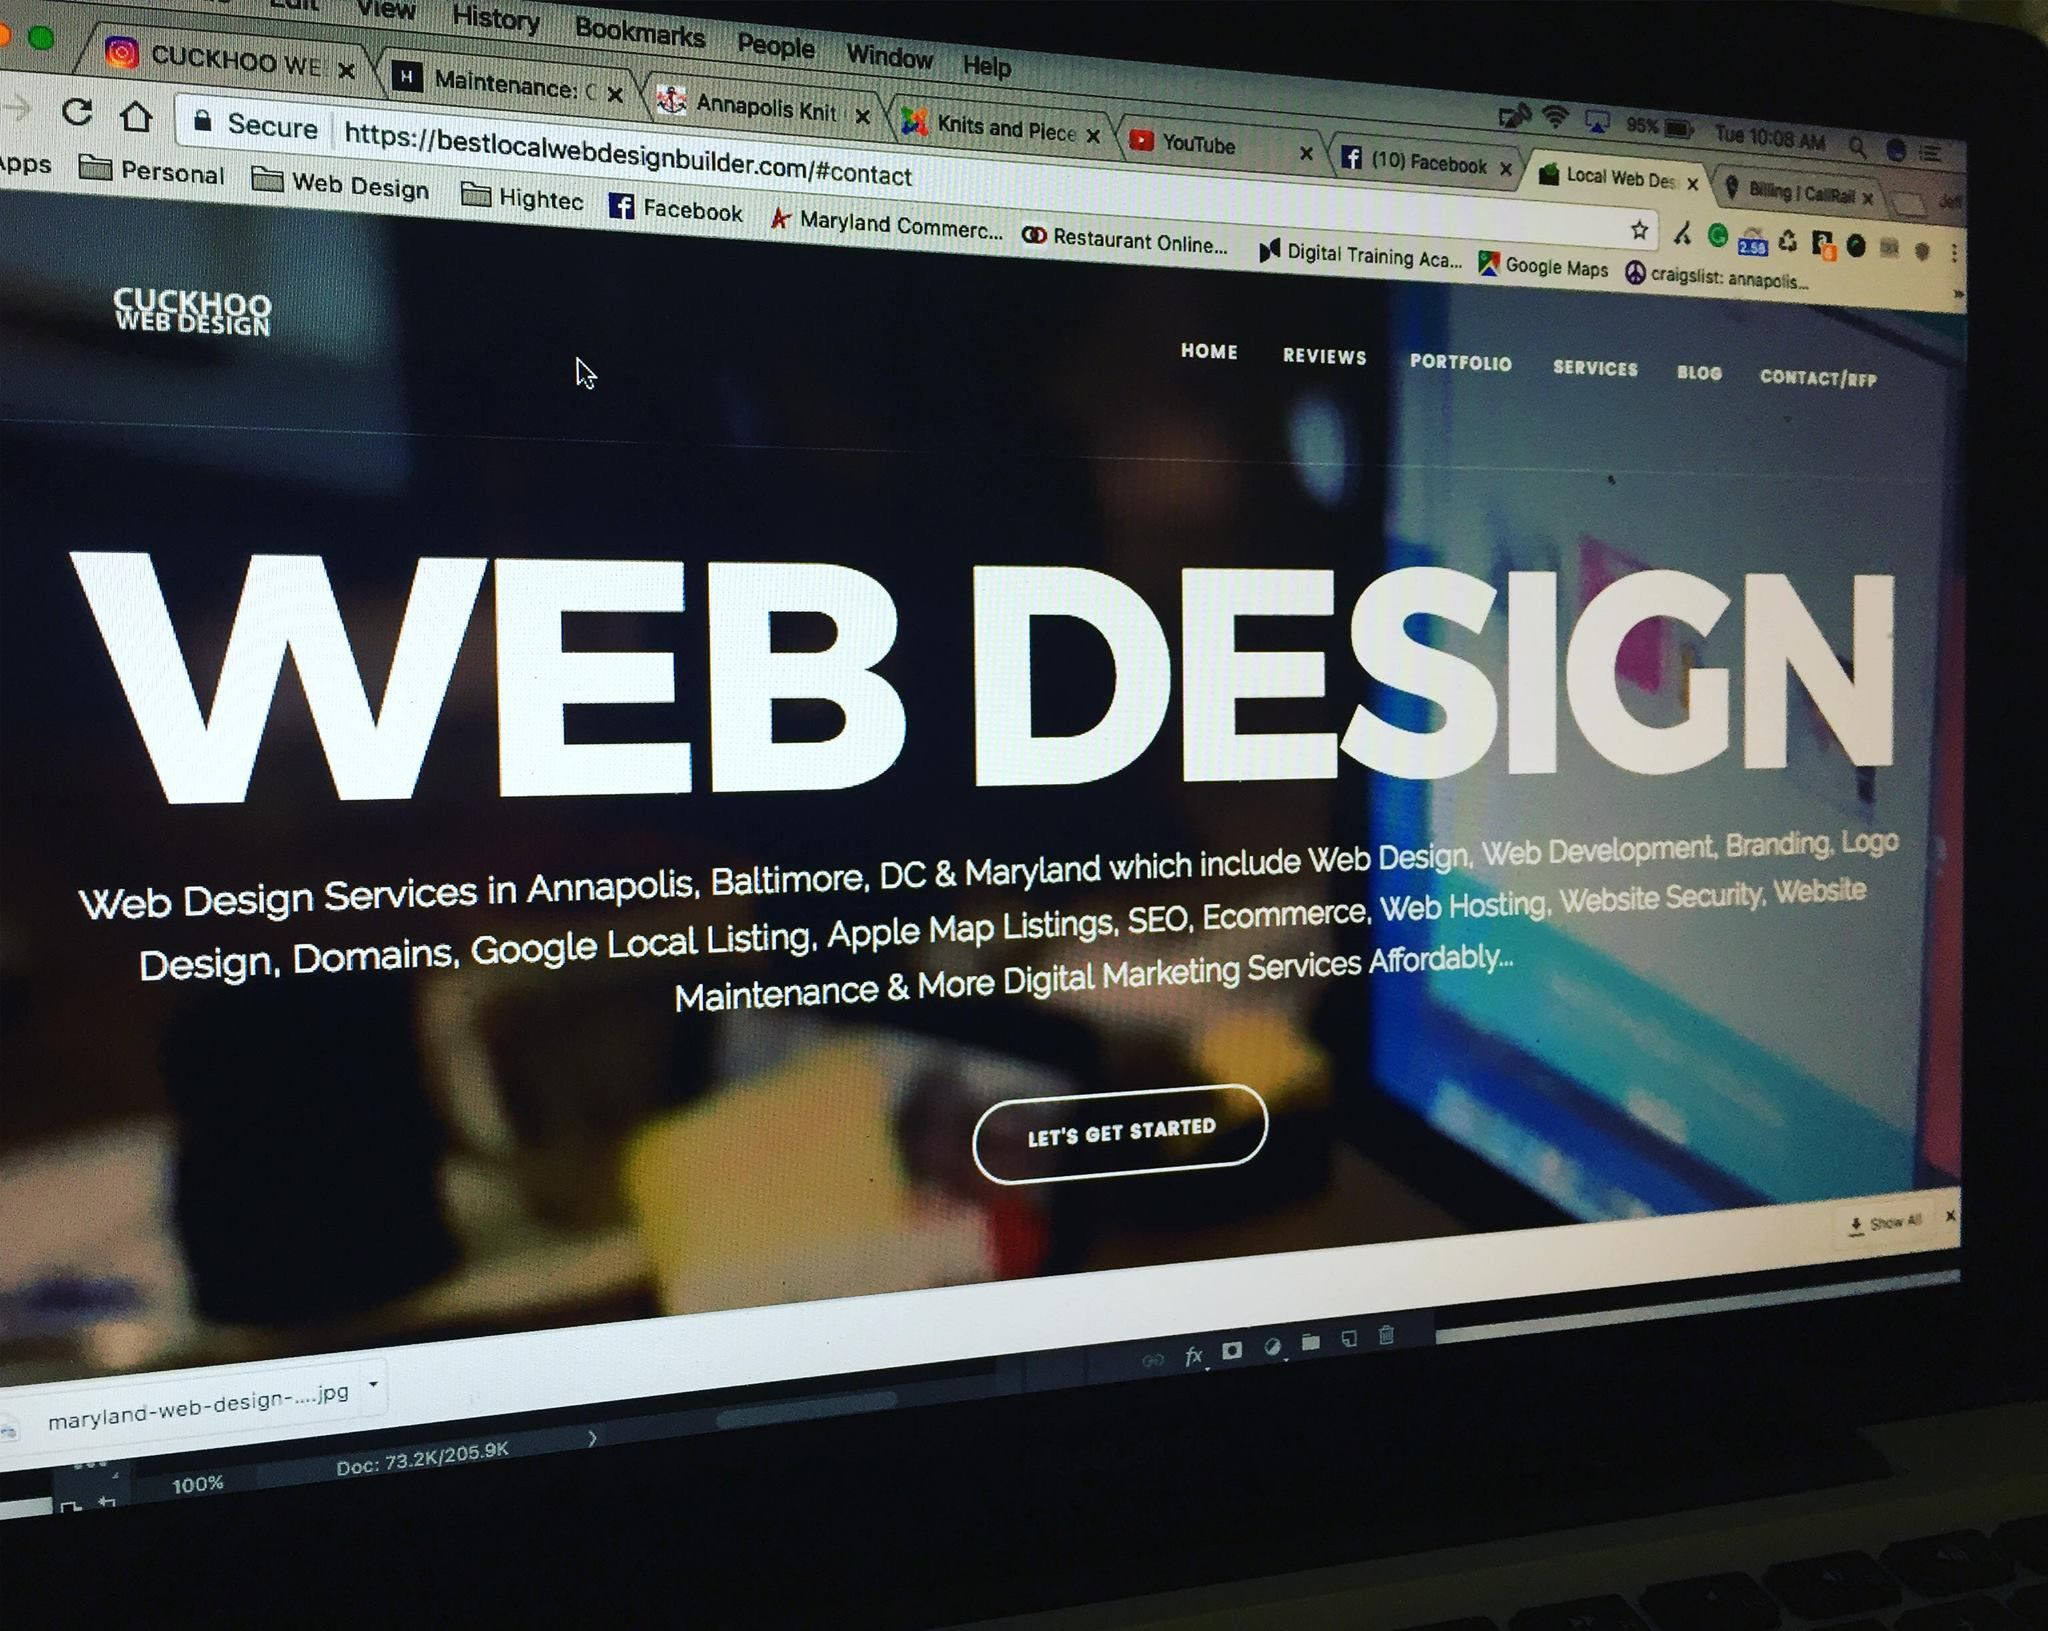 Nyc Web Design Digital Marketing Is The Best Website Design Company With Excellent Reviews Fun Website Design Website Design Services Website Design Company